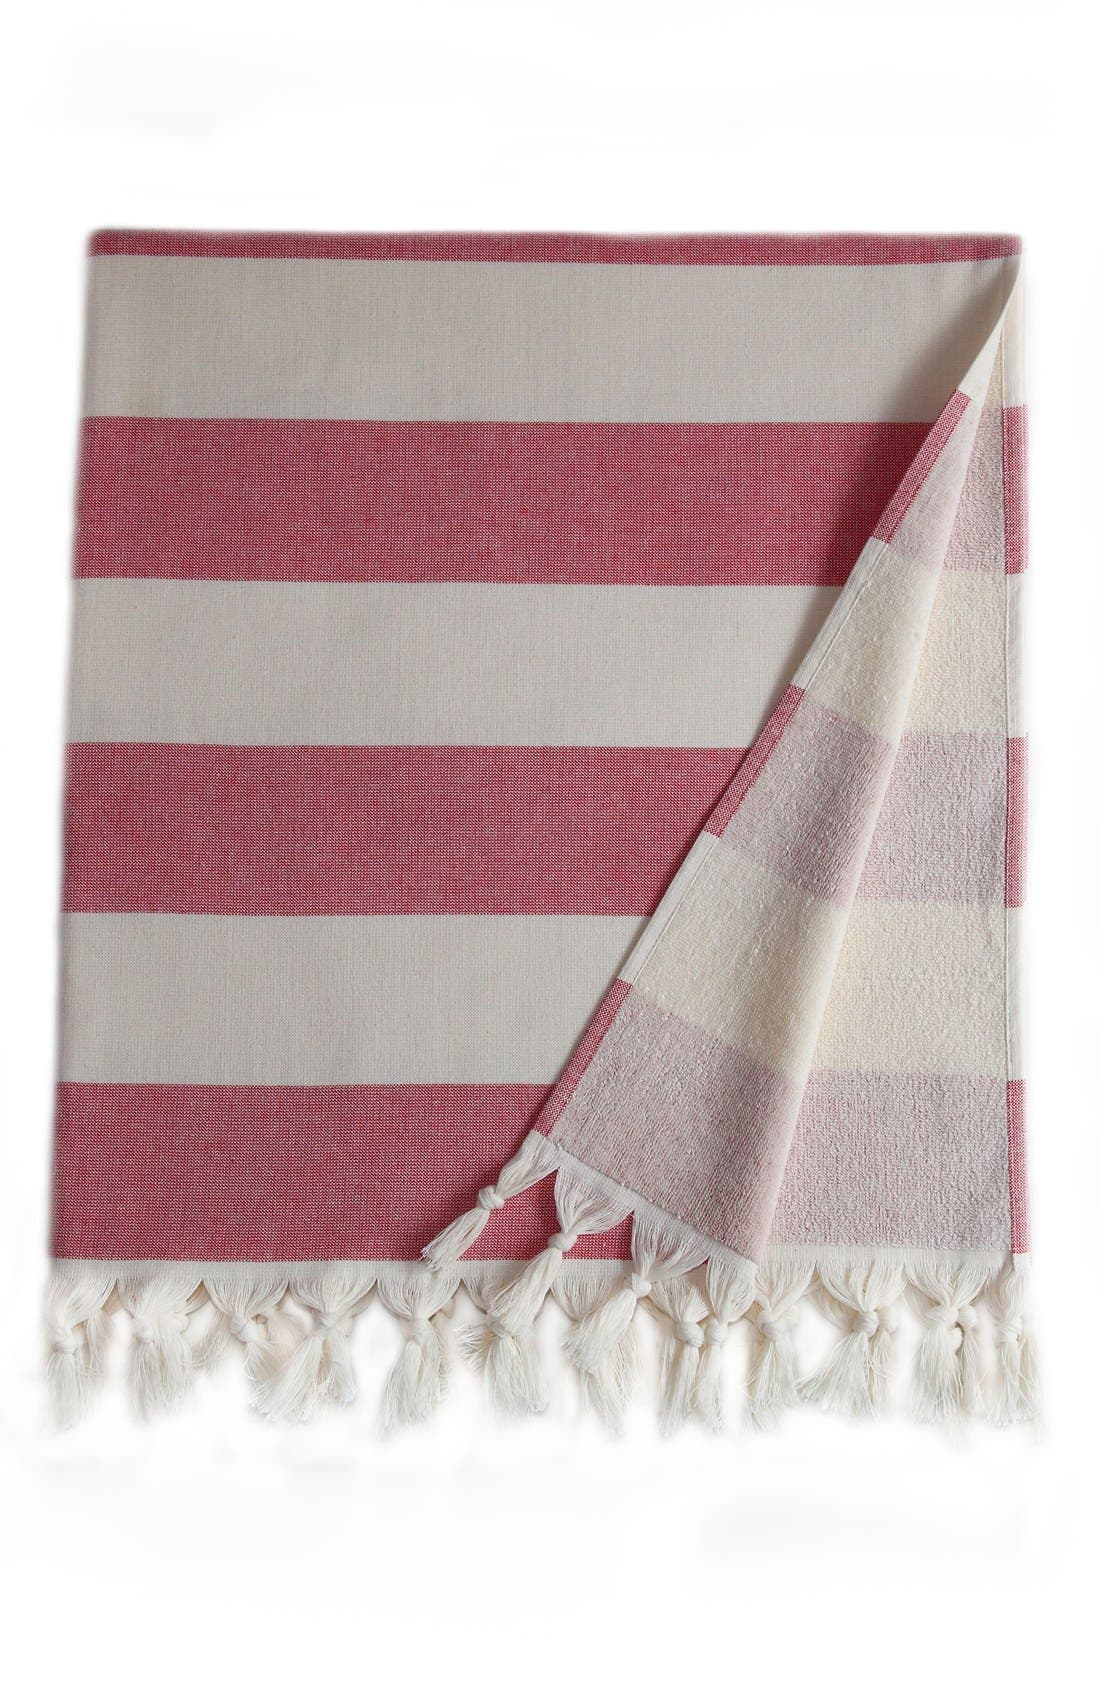 Alternate Image 1 Selected - Linum Home Textiles 'Patara' Turkish Pestemal Towel